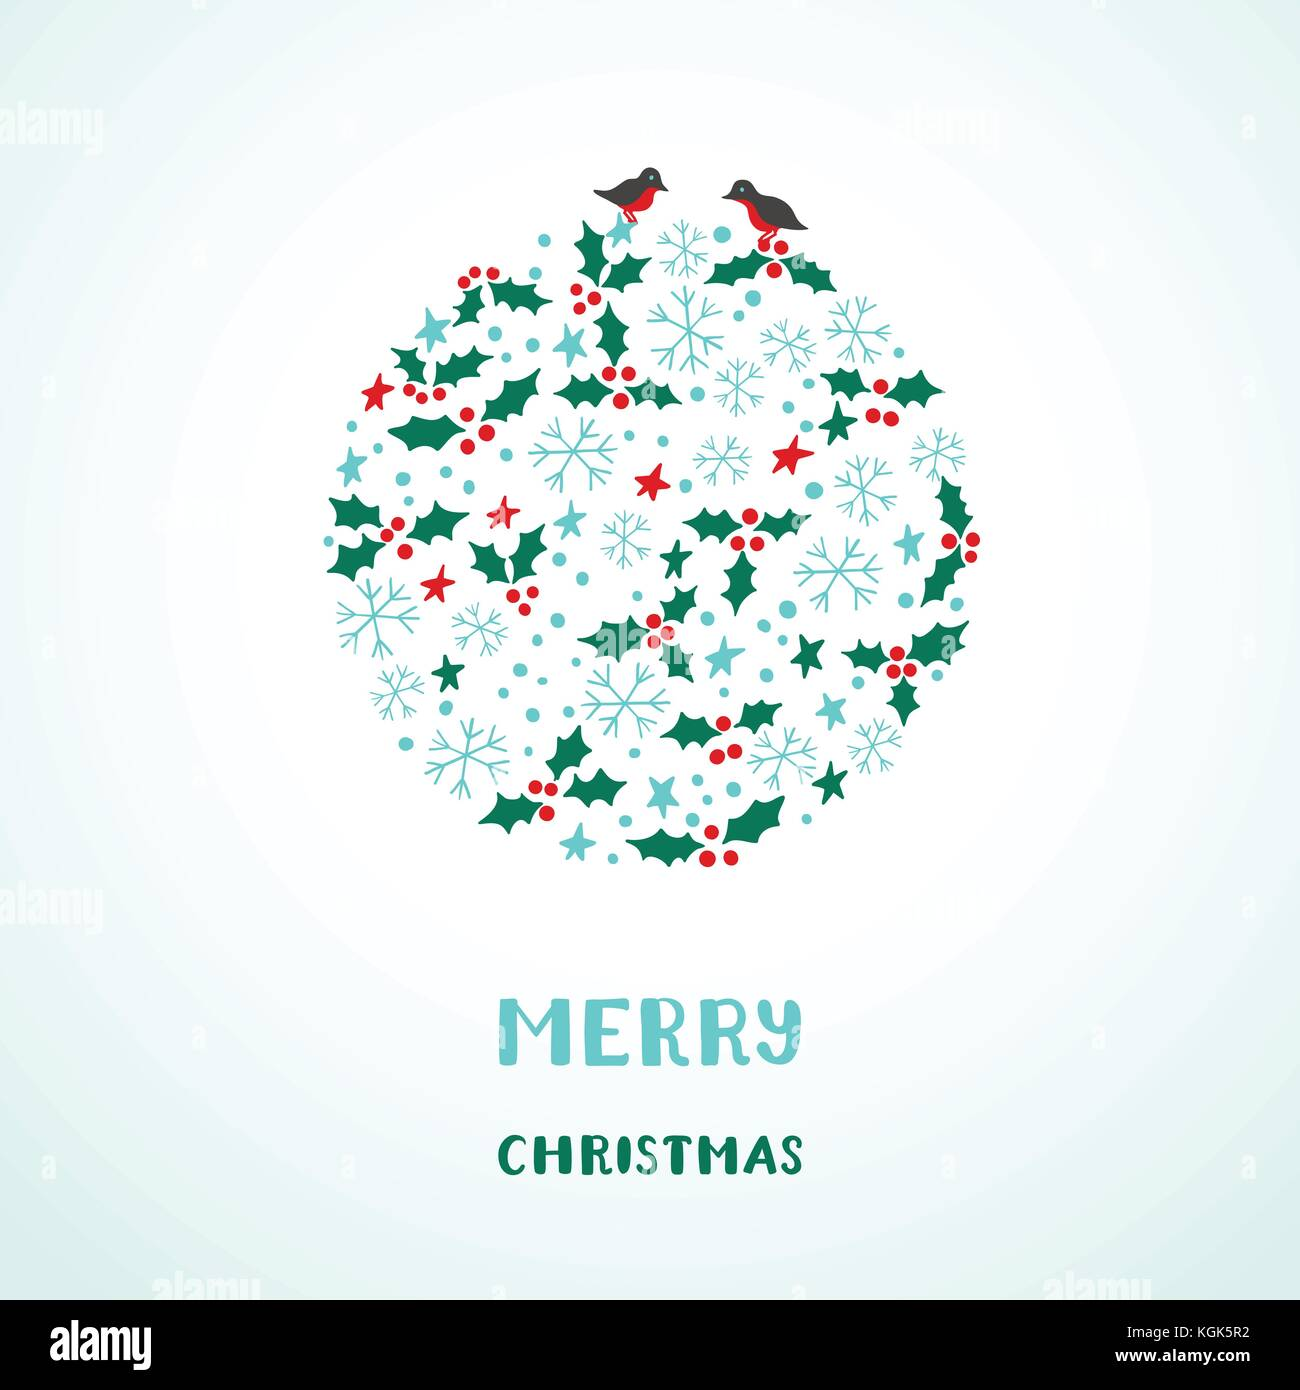 Christmas card with snowflakes, stars, birds and holly Stock Vector